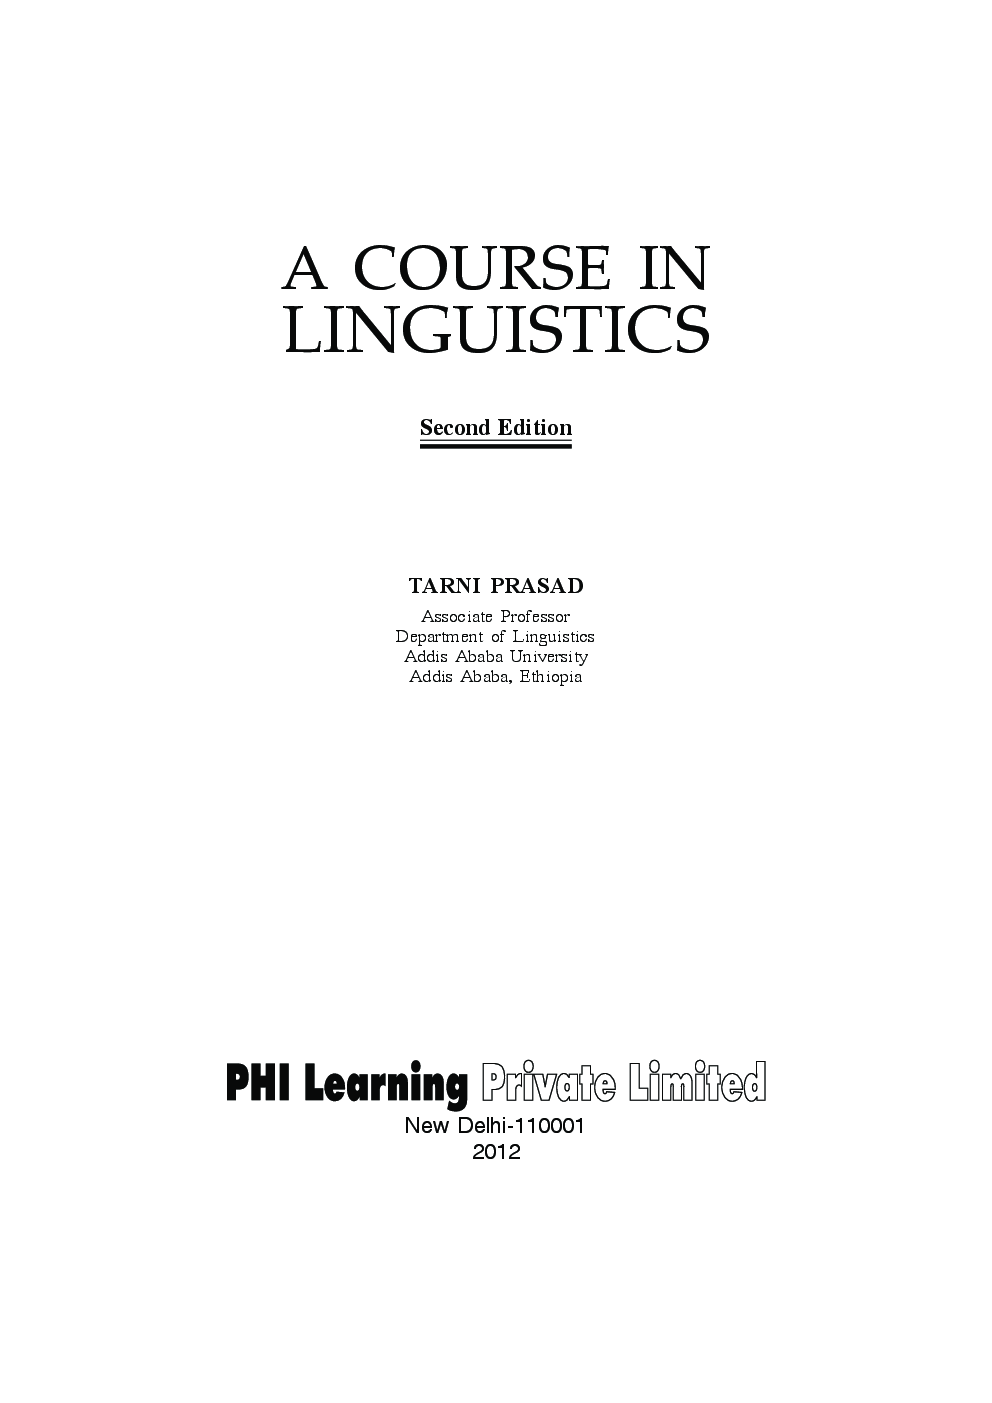 Download a course in linguistics by tarni prasad pdf online a course in linguistics by tarni prasad fandeluxe Images